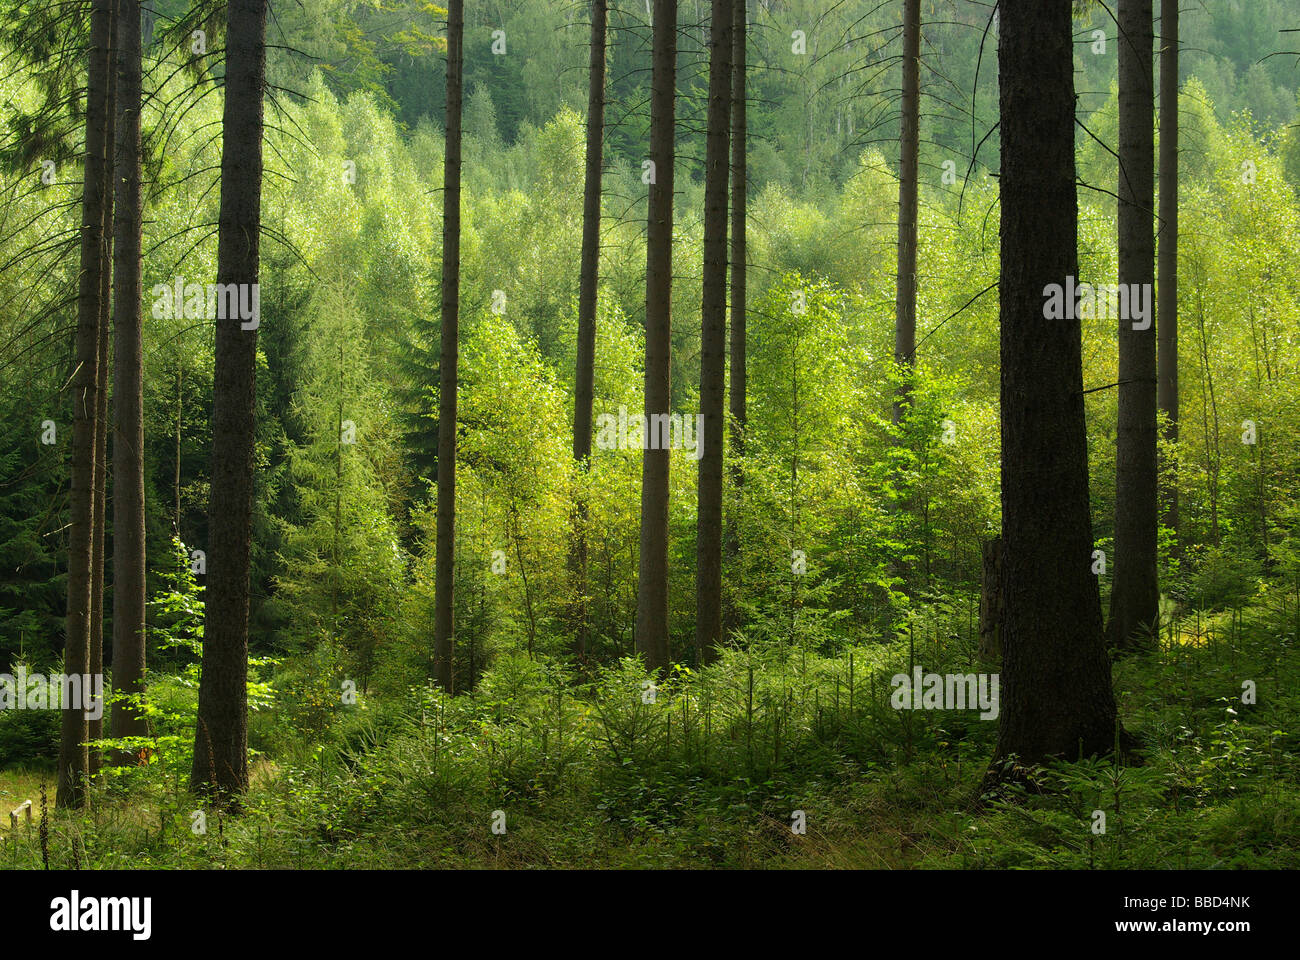 Wald forest 41 - Stock Image